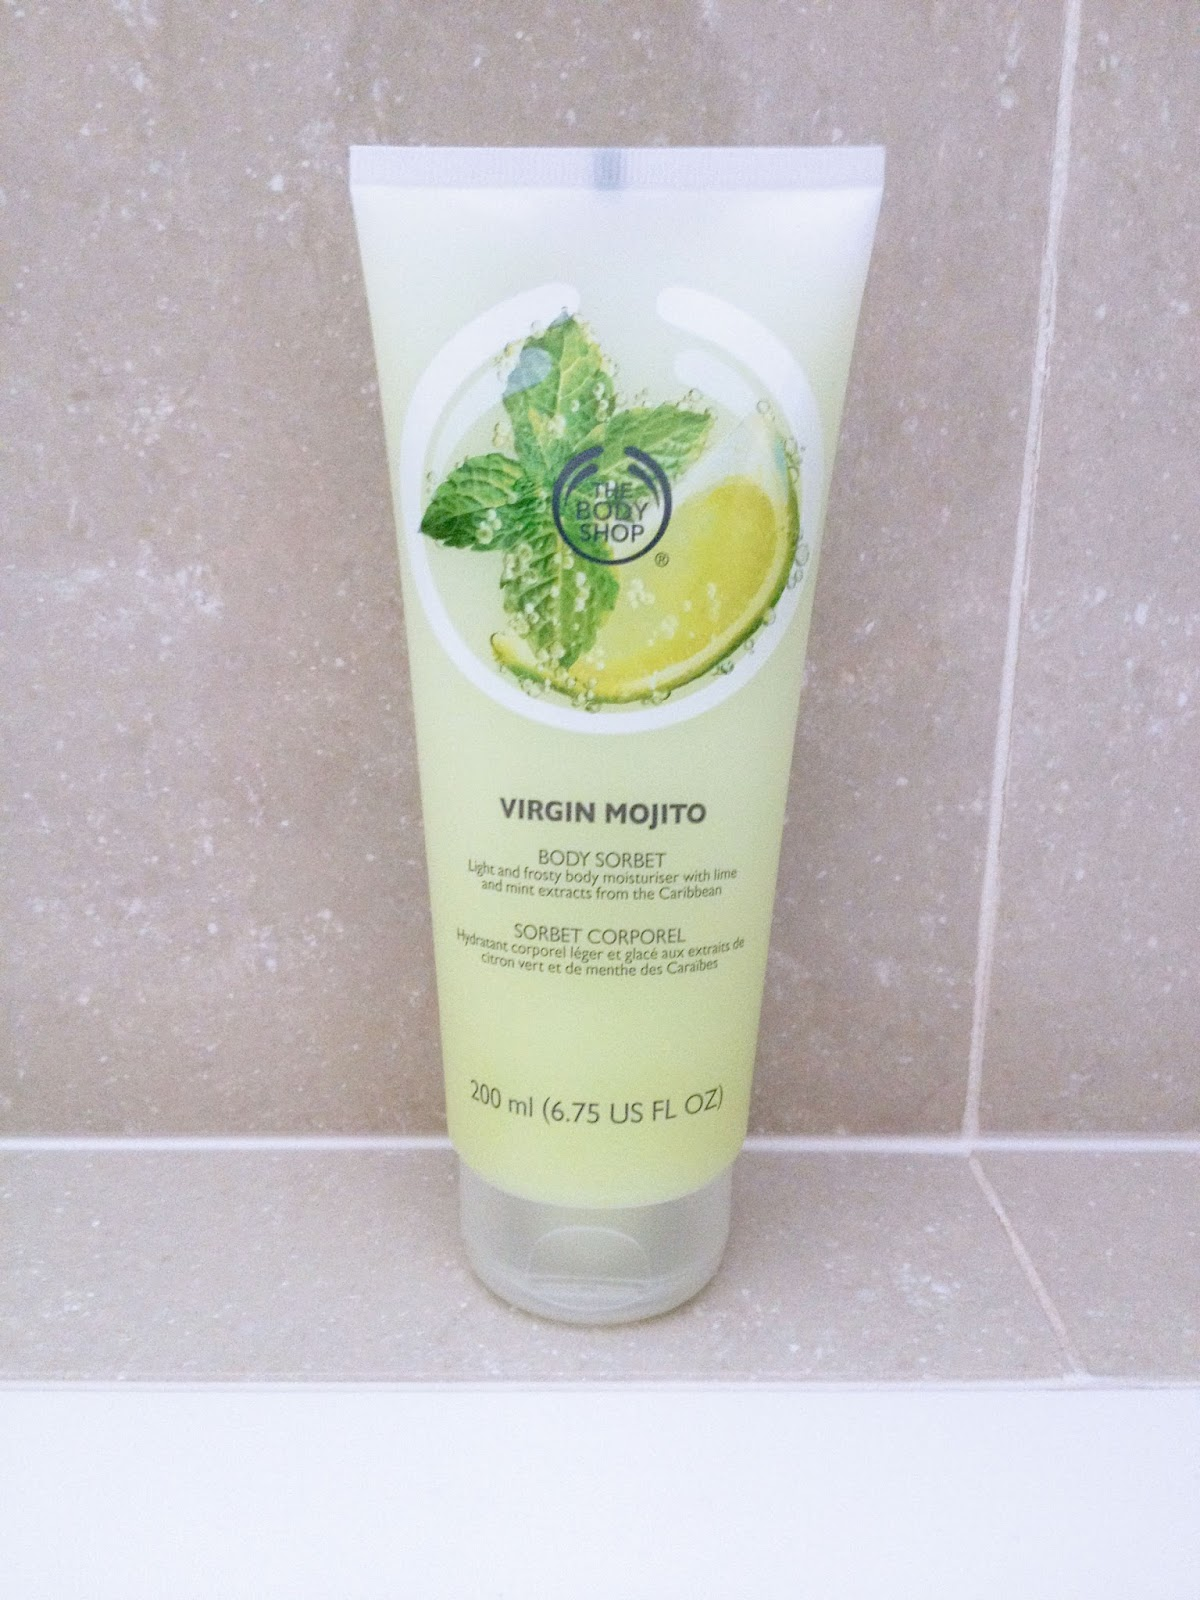 The Body Shop Virgin Mojito Body Sorbet